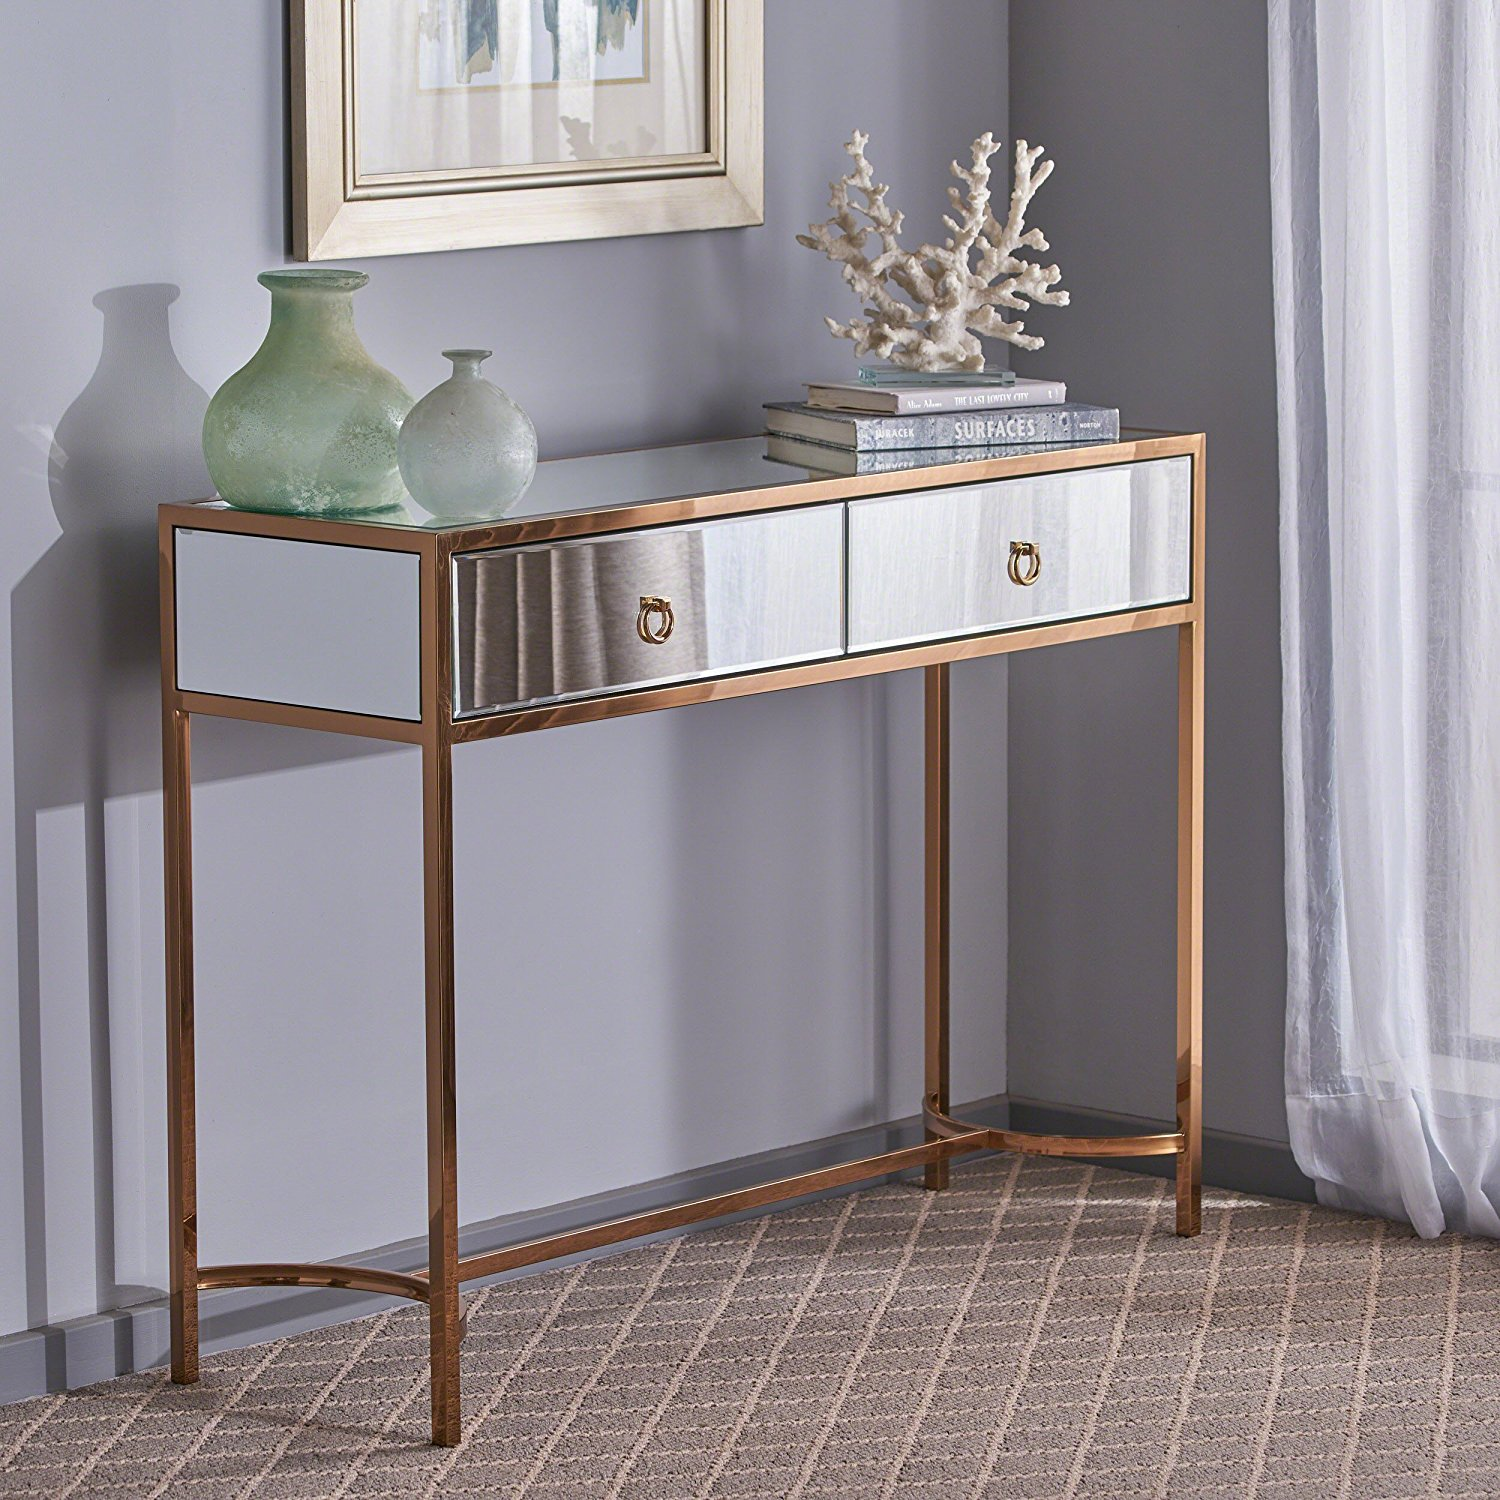 Get Quotations · Great Deal Furniture | Summerland | Modern Mirrored  Console Table With Finished Stainless Steel Frame |